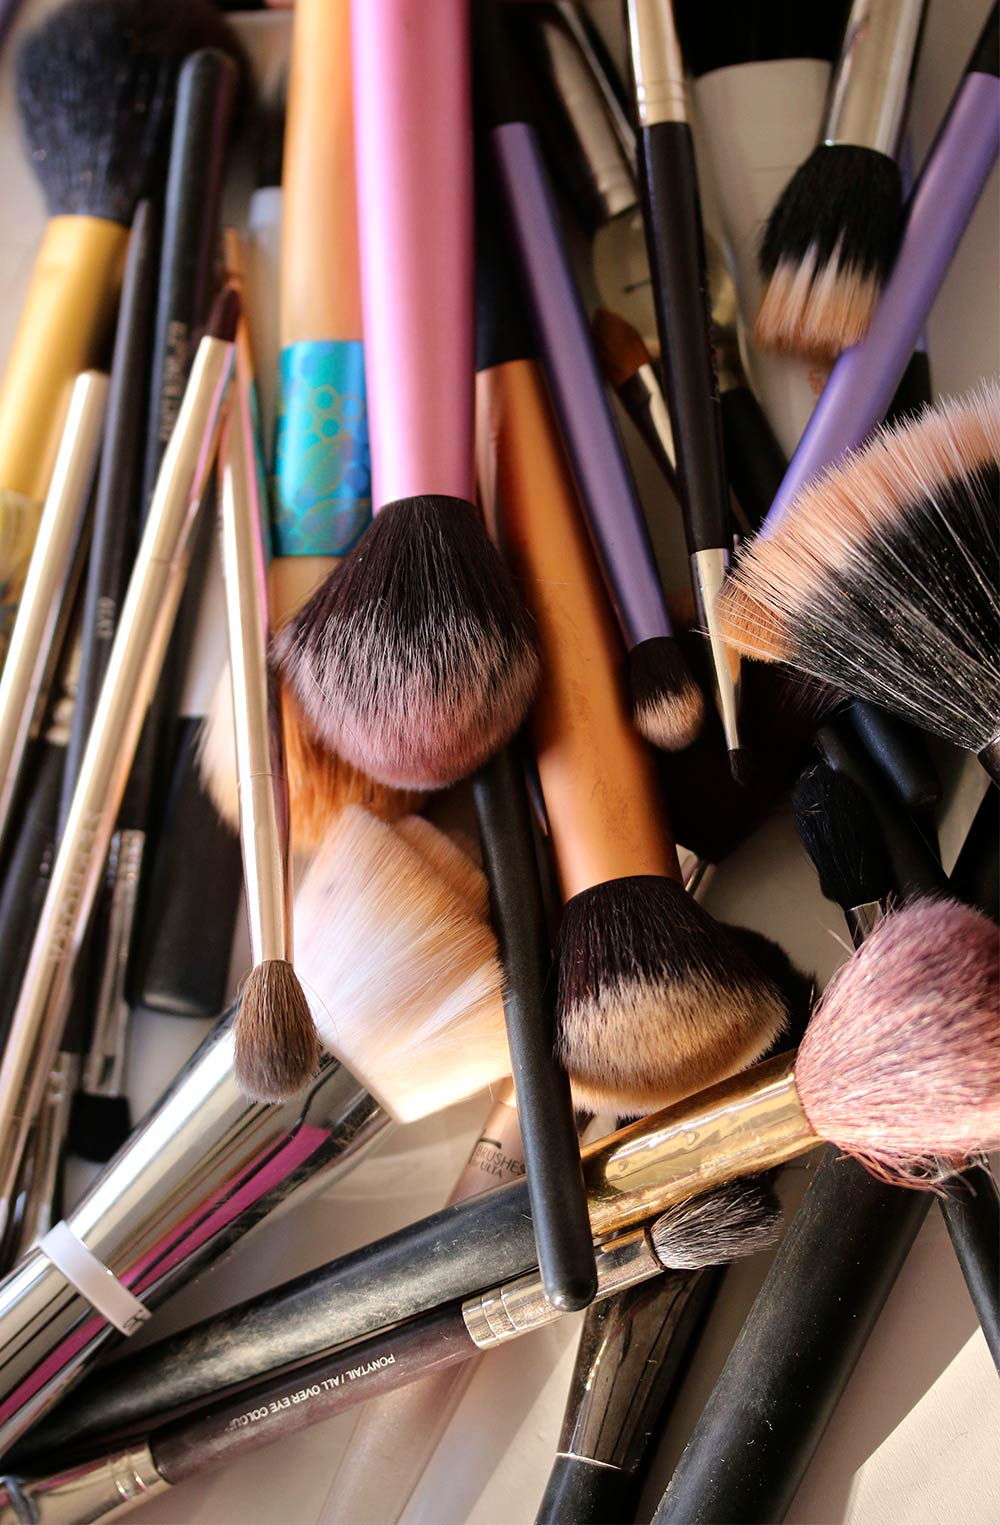 dirty makeup brushes - Have You Ever Dated Someone Who Expected You to Wear Your Makeup a Certain Way?